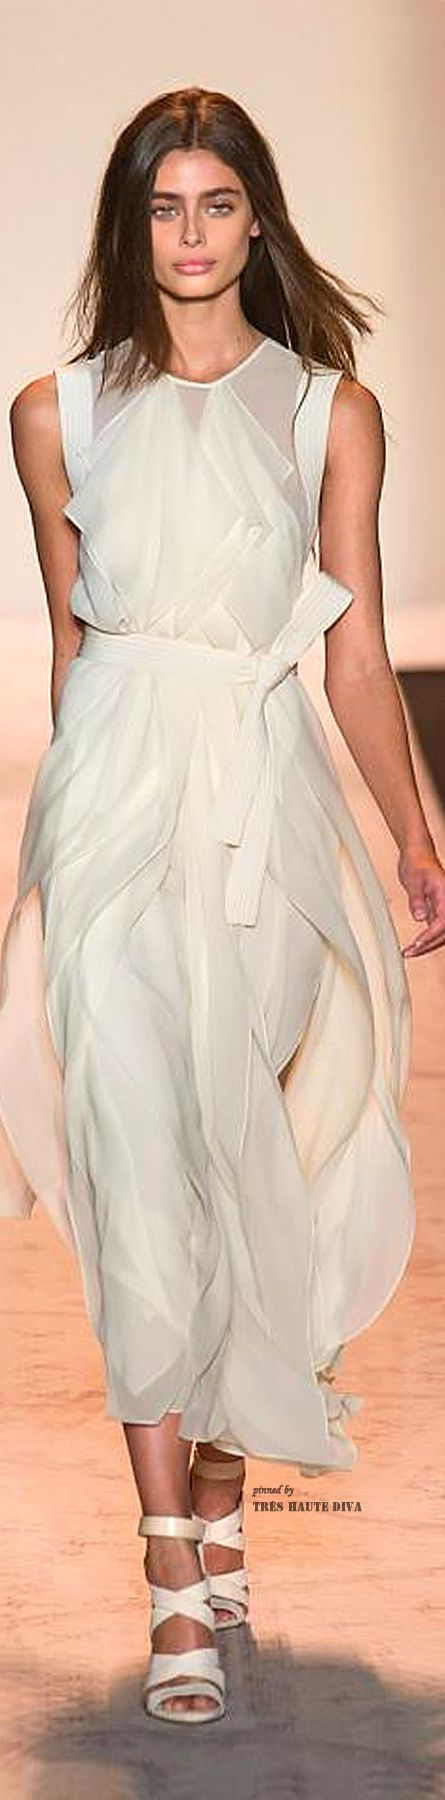 #NYFW BCBG Max Azria Spring 2015 RTW. A striking wedding dress for a certain type of woman in a certain type of more casual wedding, I think.